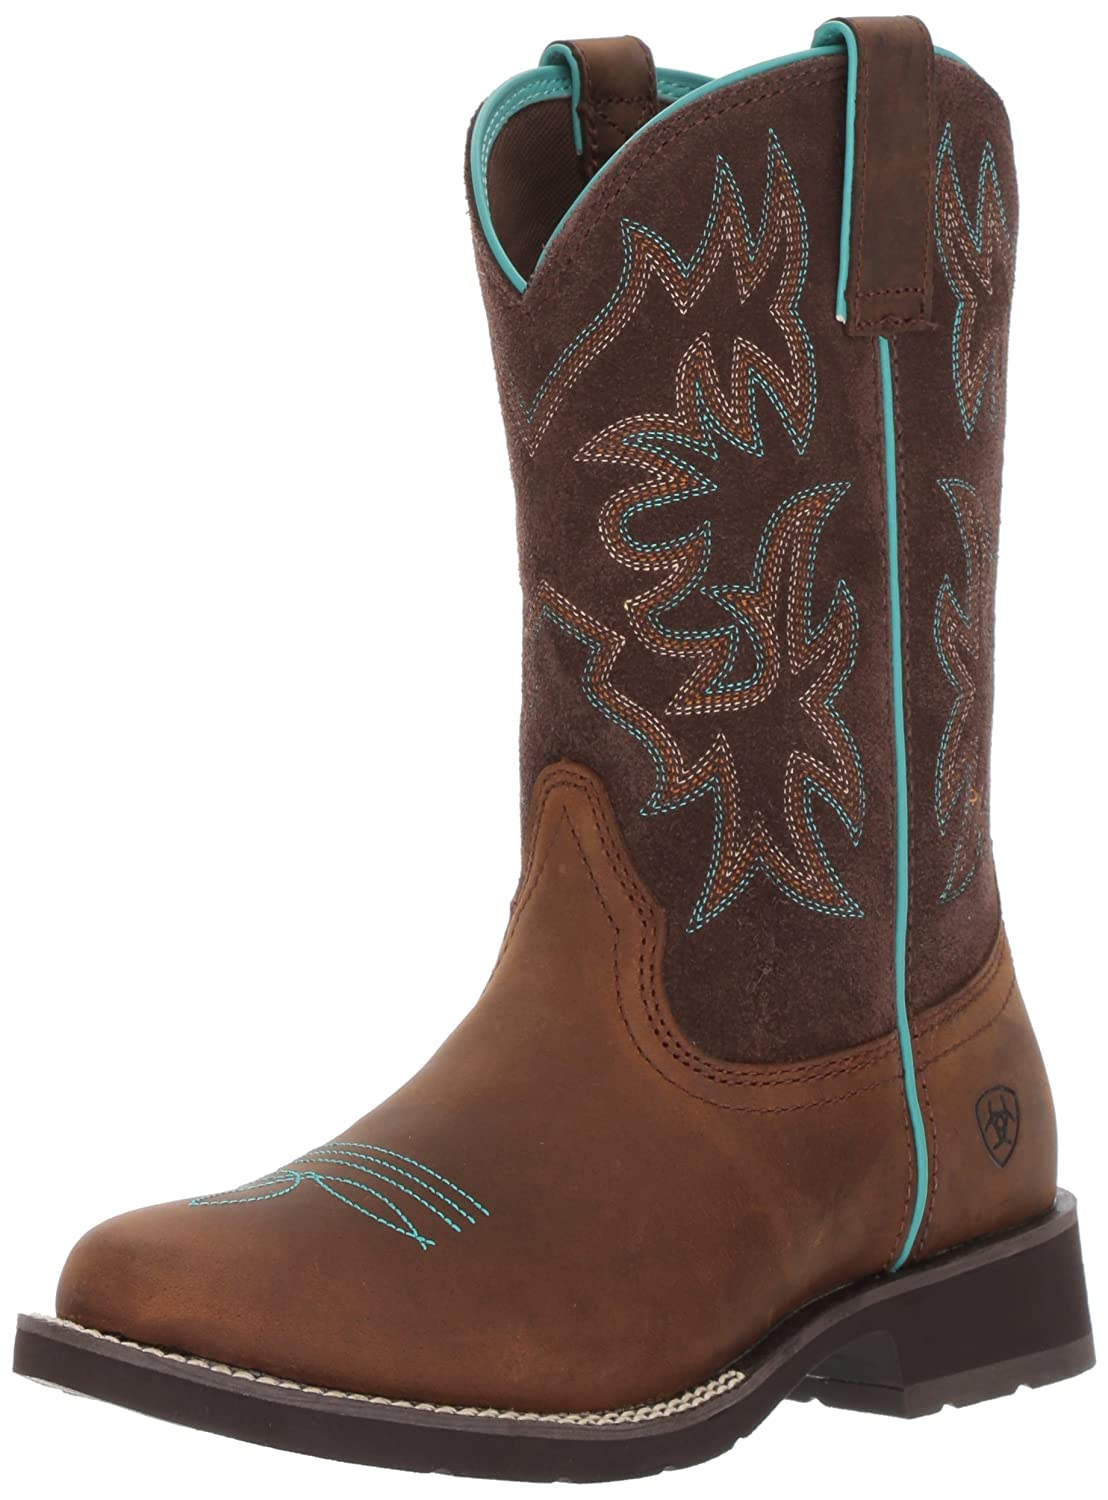 Ariat Women's Delilah Round Toe Work Boot B01MZFB6PV 7 B(M) US|Distressed Brown